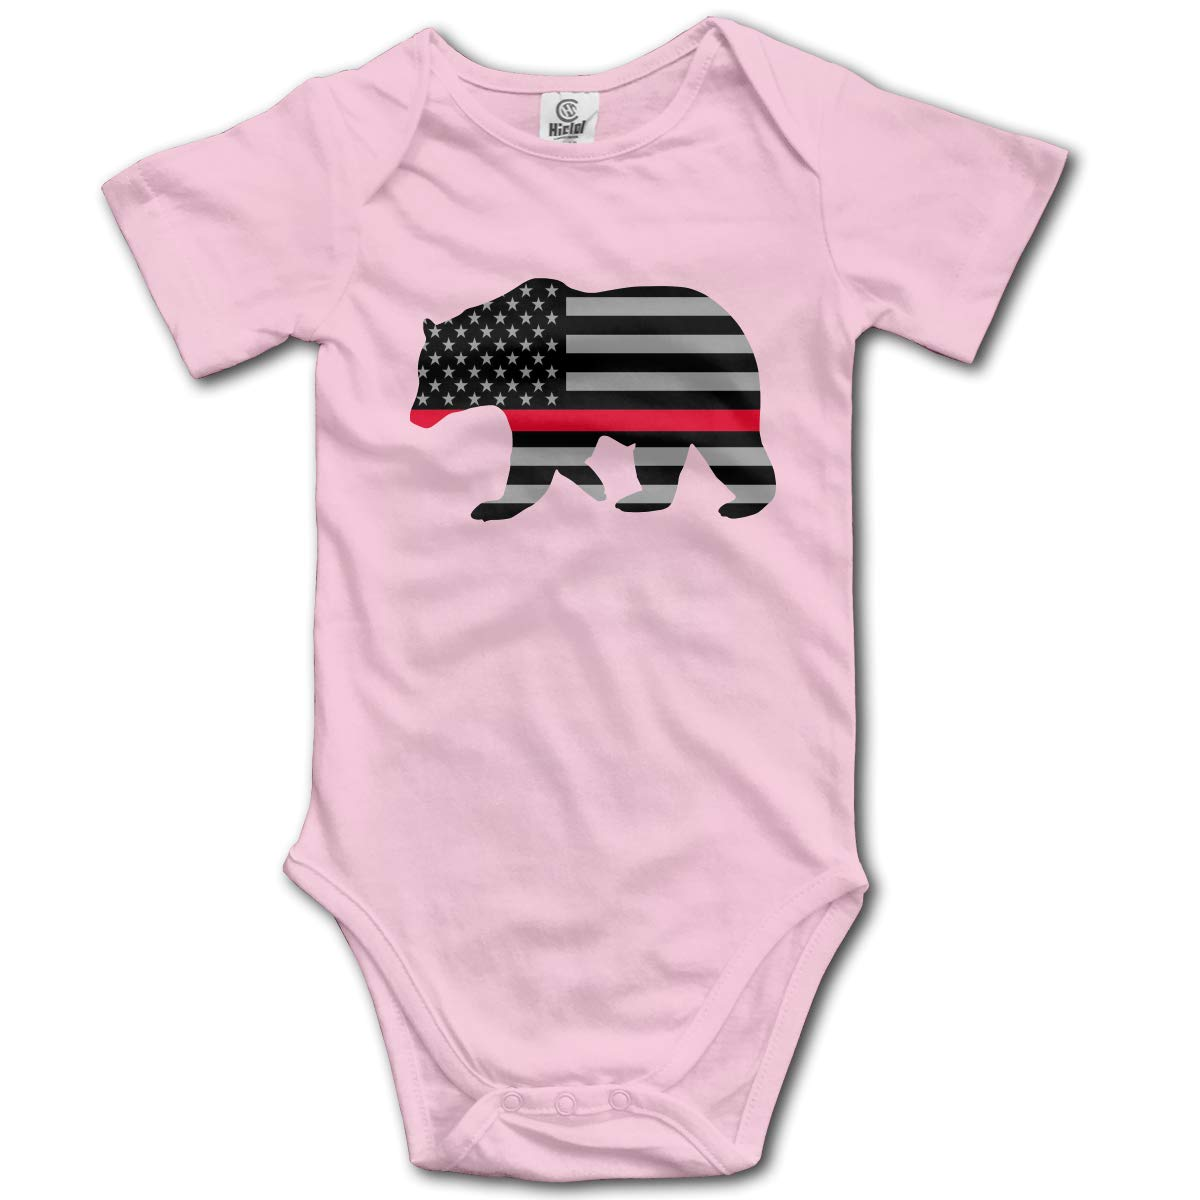 CUTEDWARF Baby Short-Sleeve Onesies American Red Thin Line Flag Bodysuit Baby Outfits